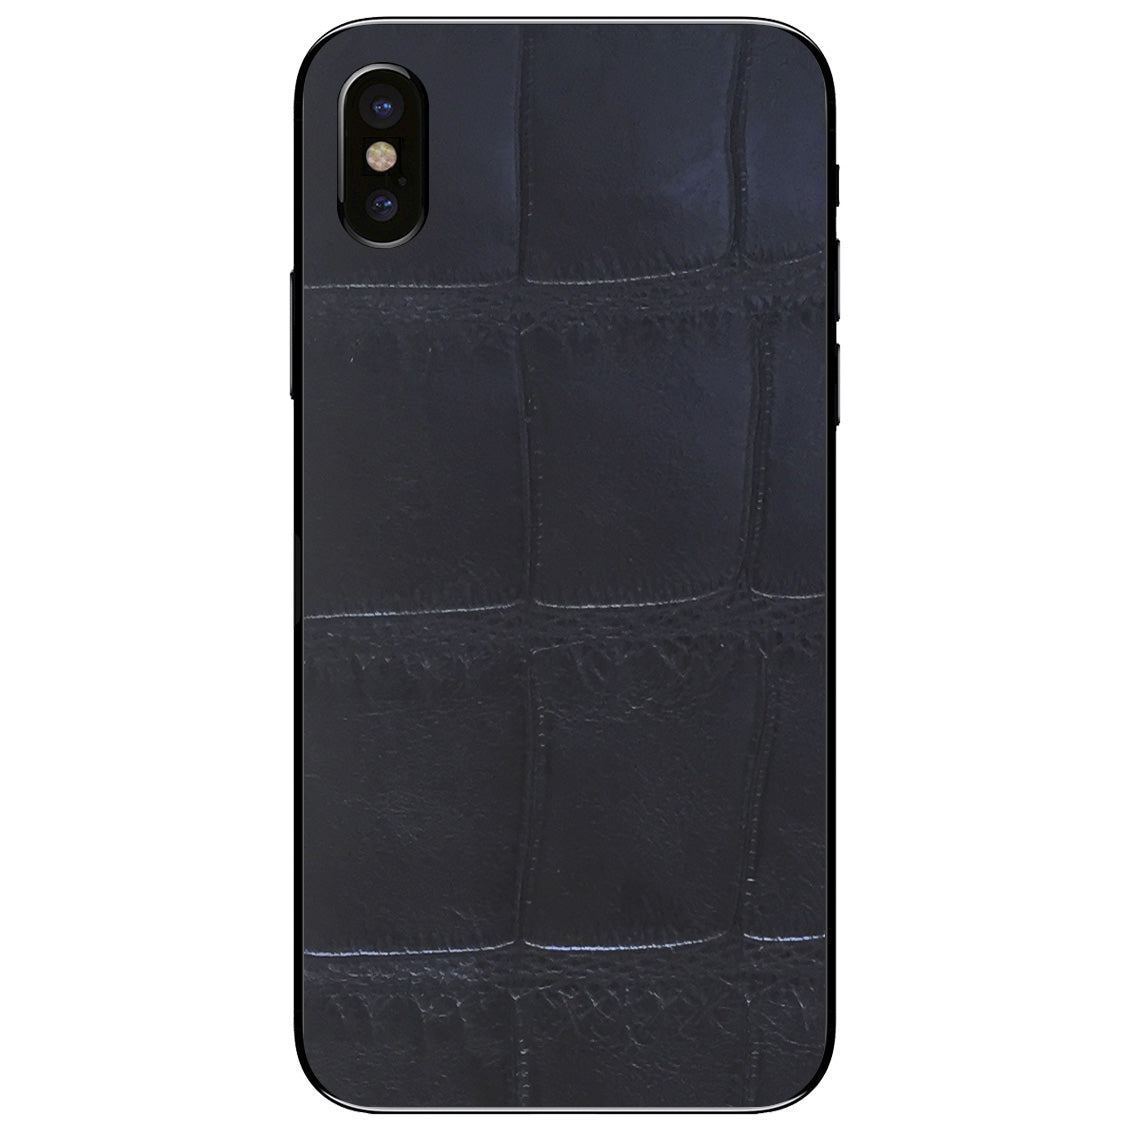 XL Black Alligator iPhone X Leather Skin